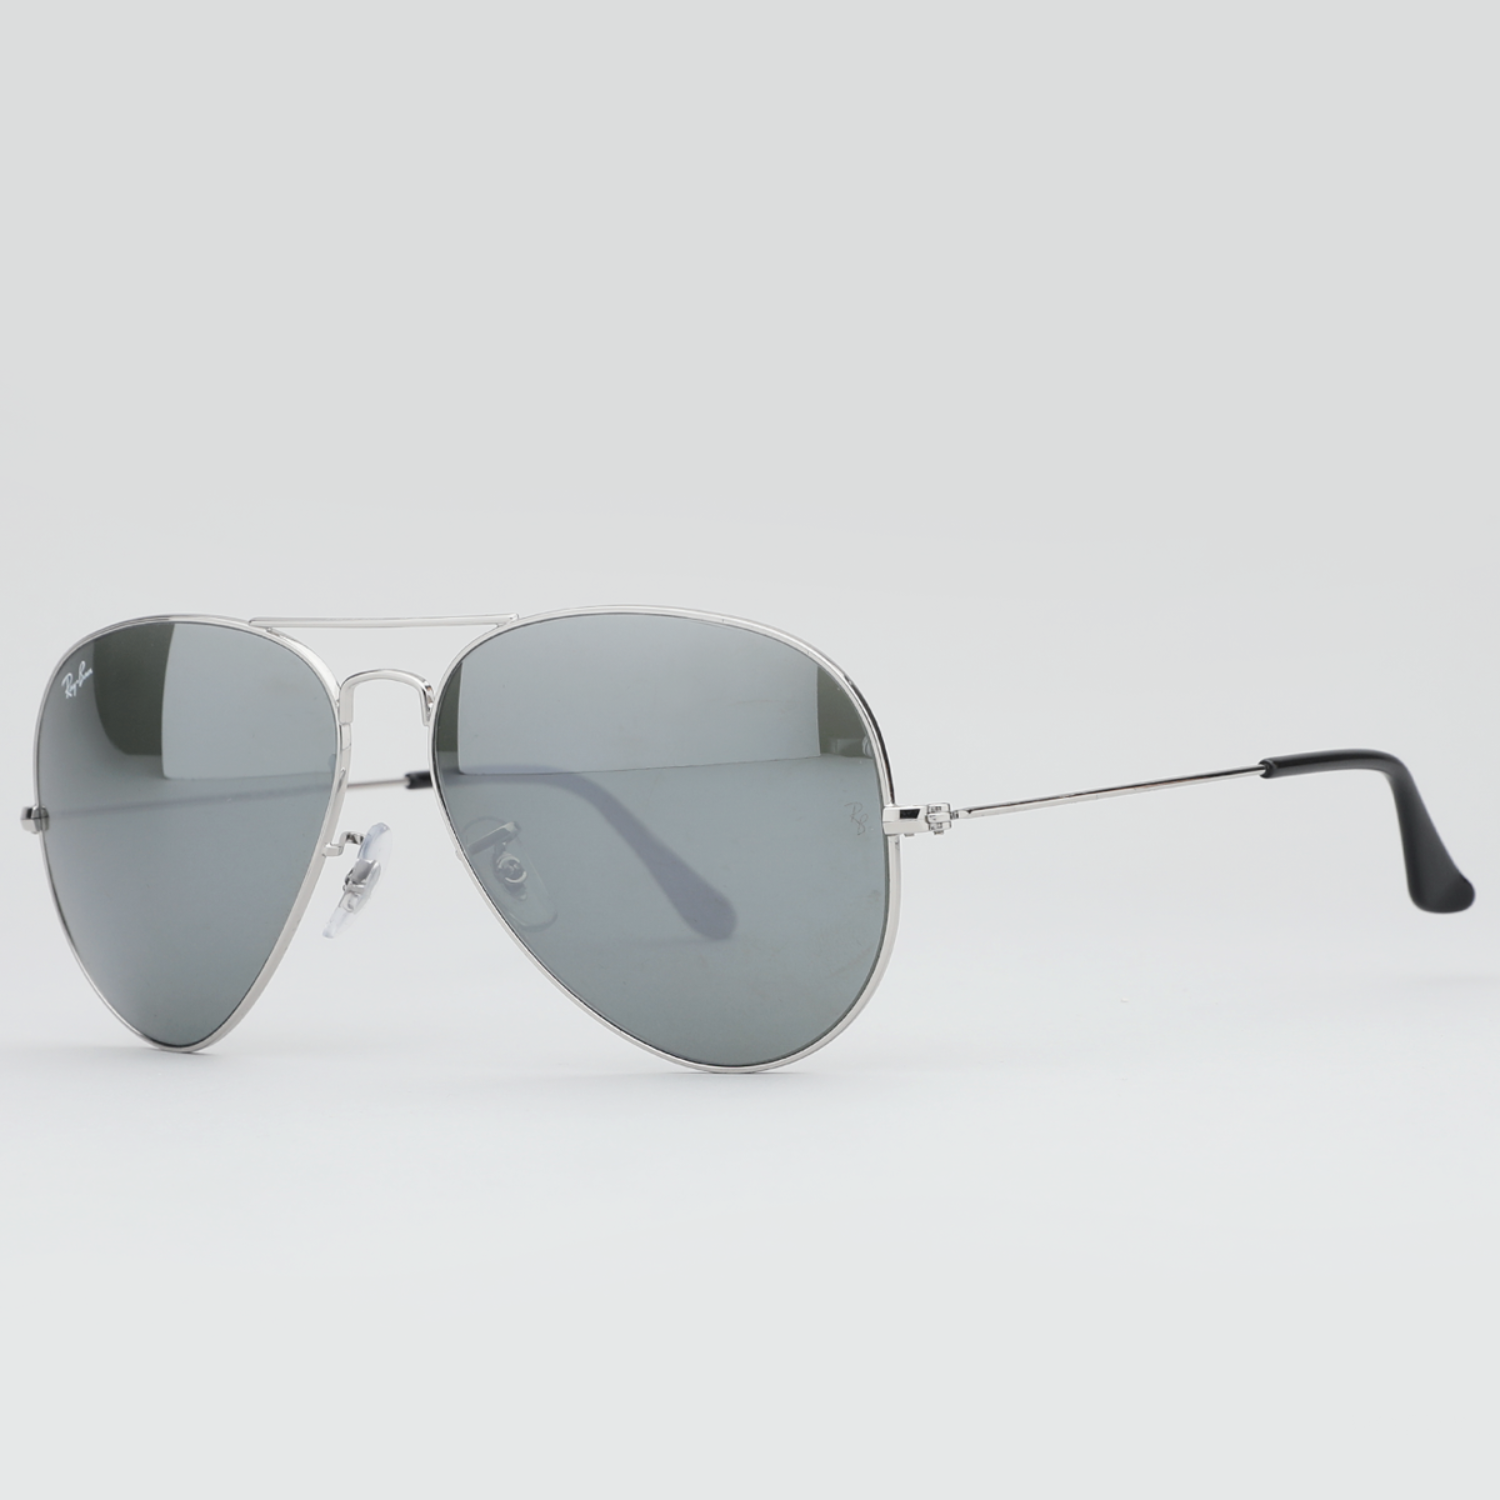 [레이벤선글라스] RB3025 AVIATOR LARGE METAL 003 40 (62) (Silver Mirror) 실버미러 (Ray-Ban)